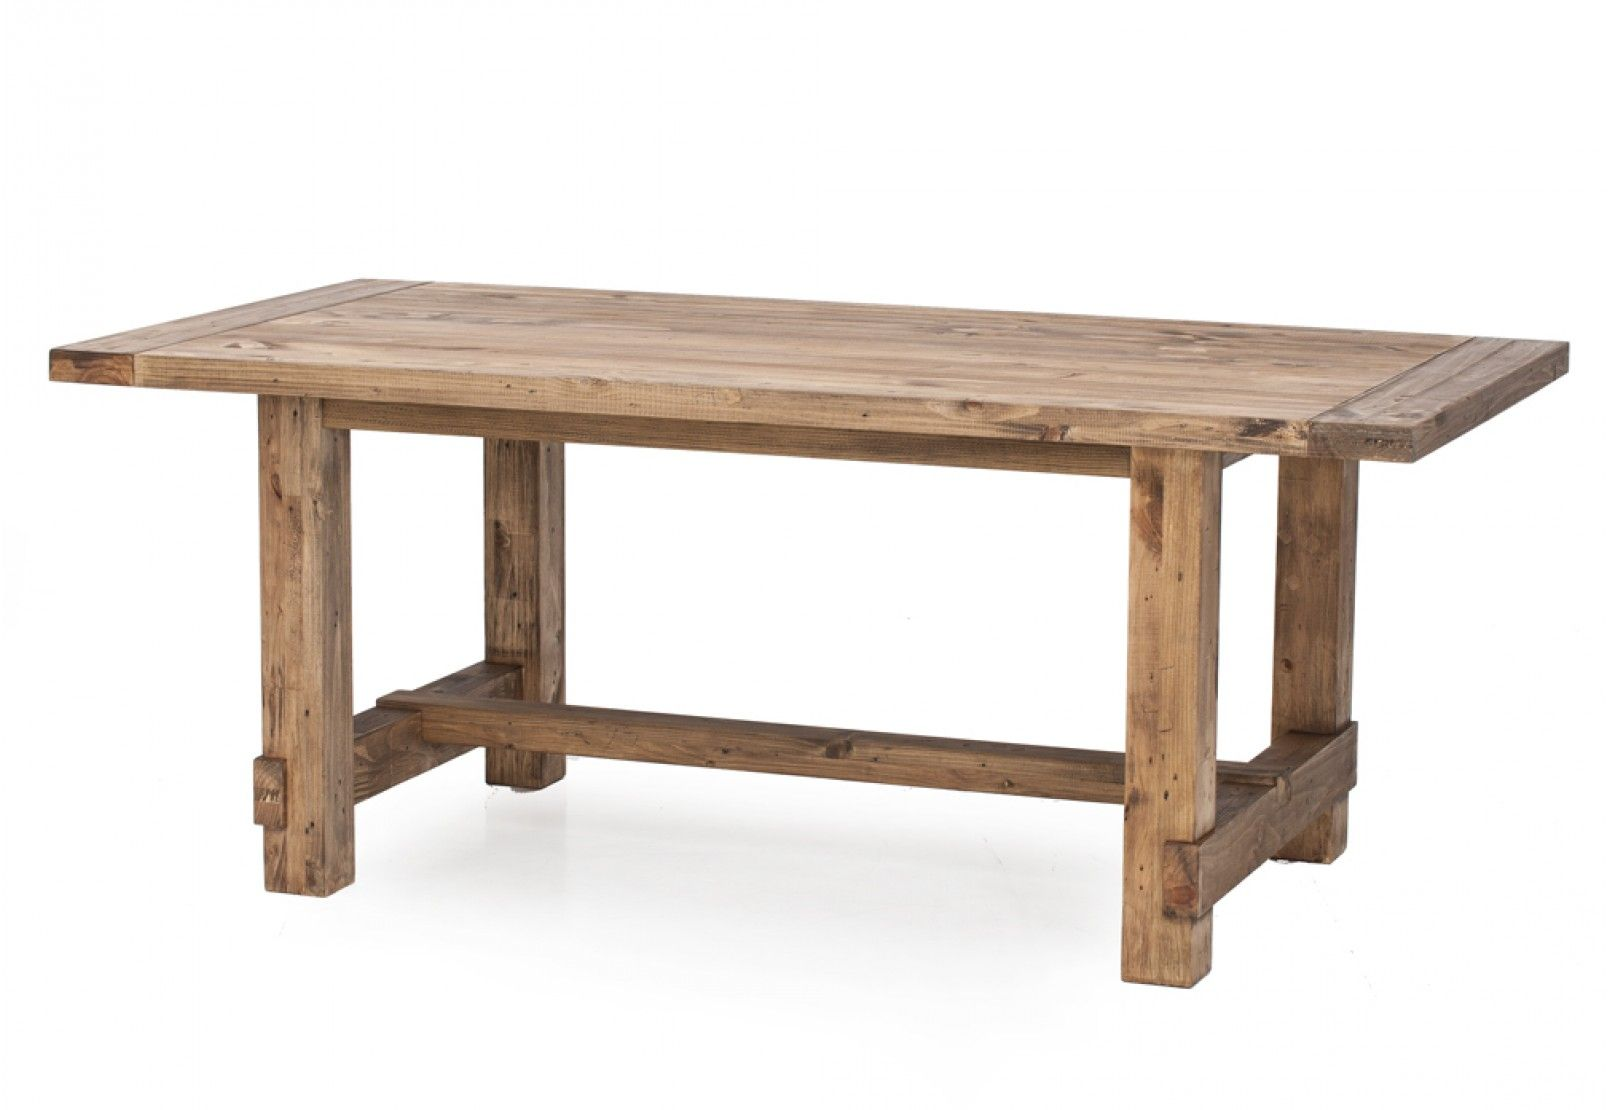 Industrial 2000 dining table super a mart things to put in my industrial 2000 dining table super a mart geotapseo Gallery